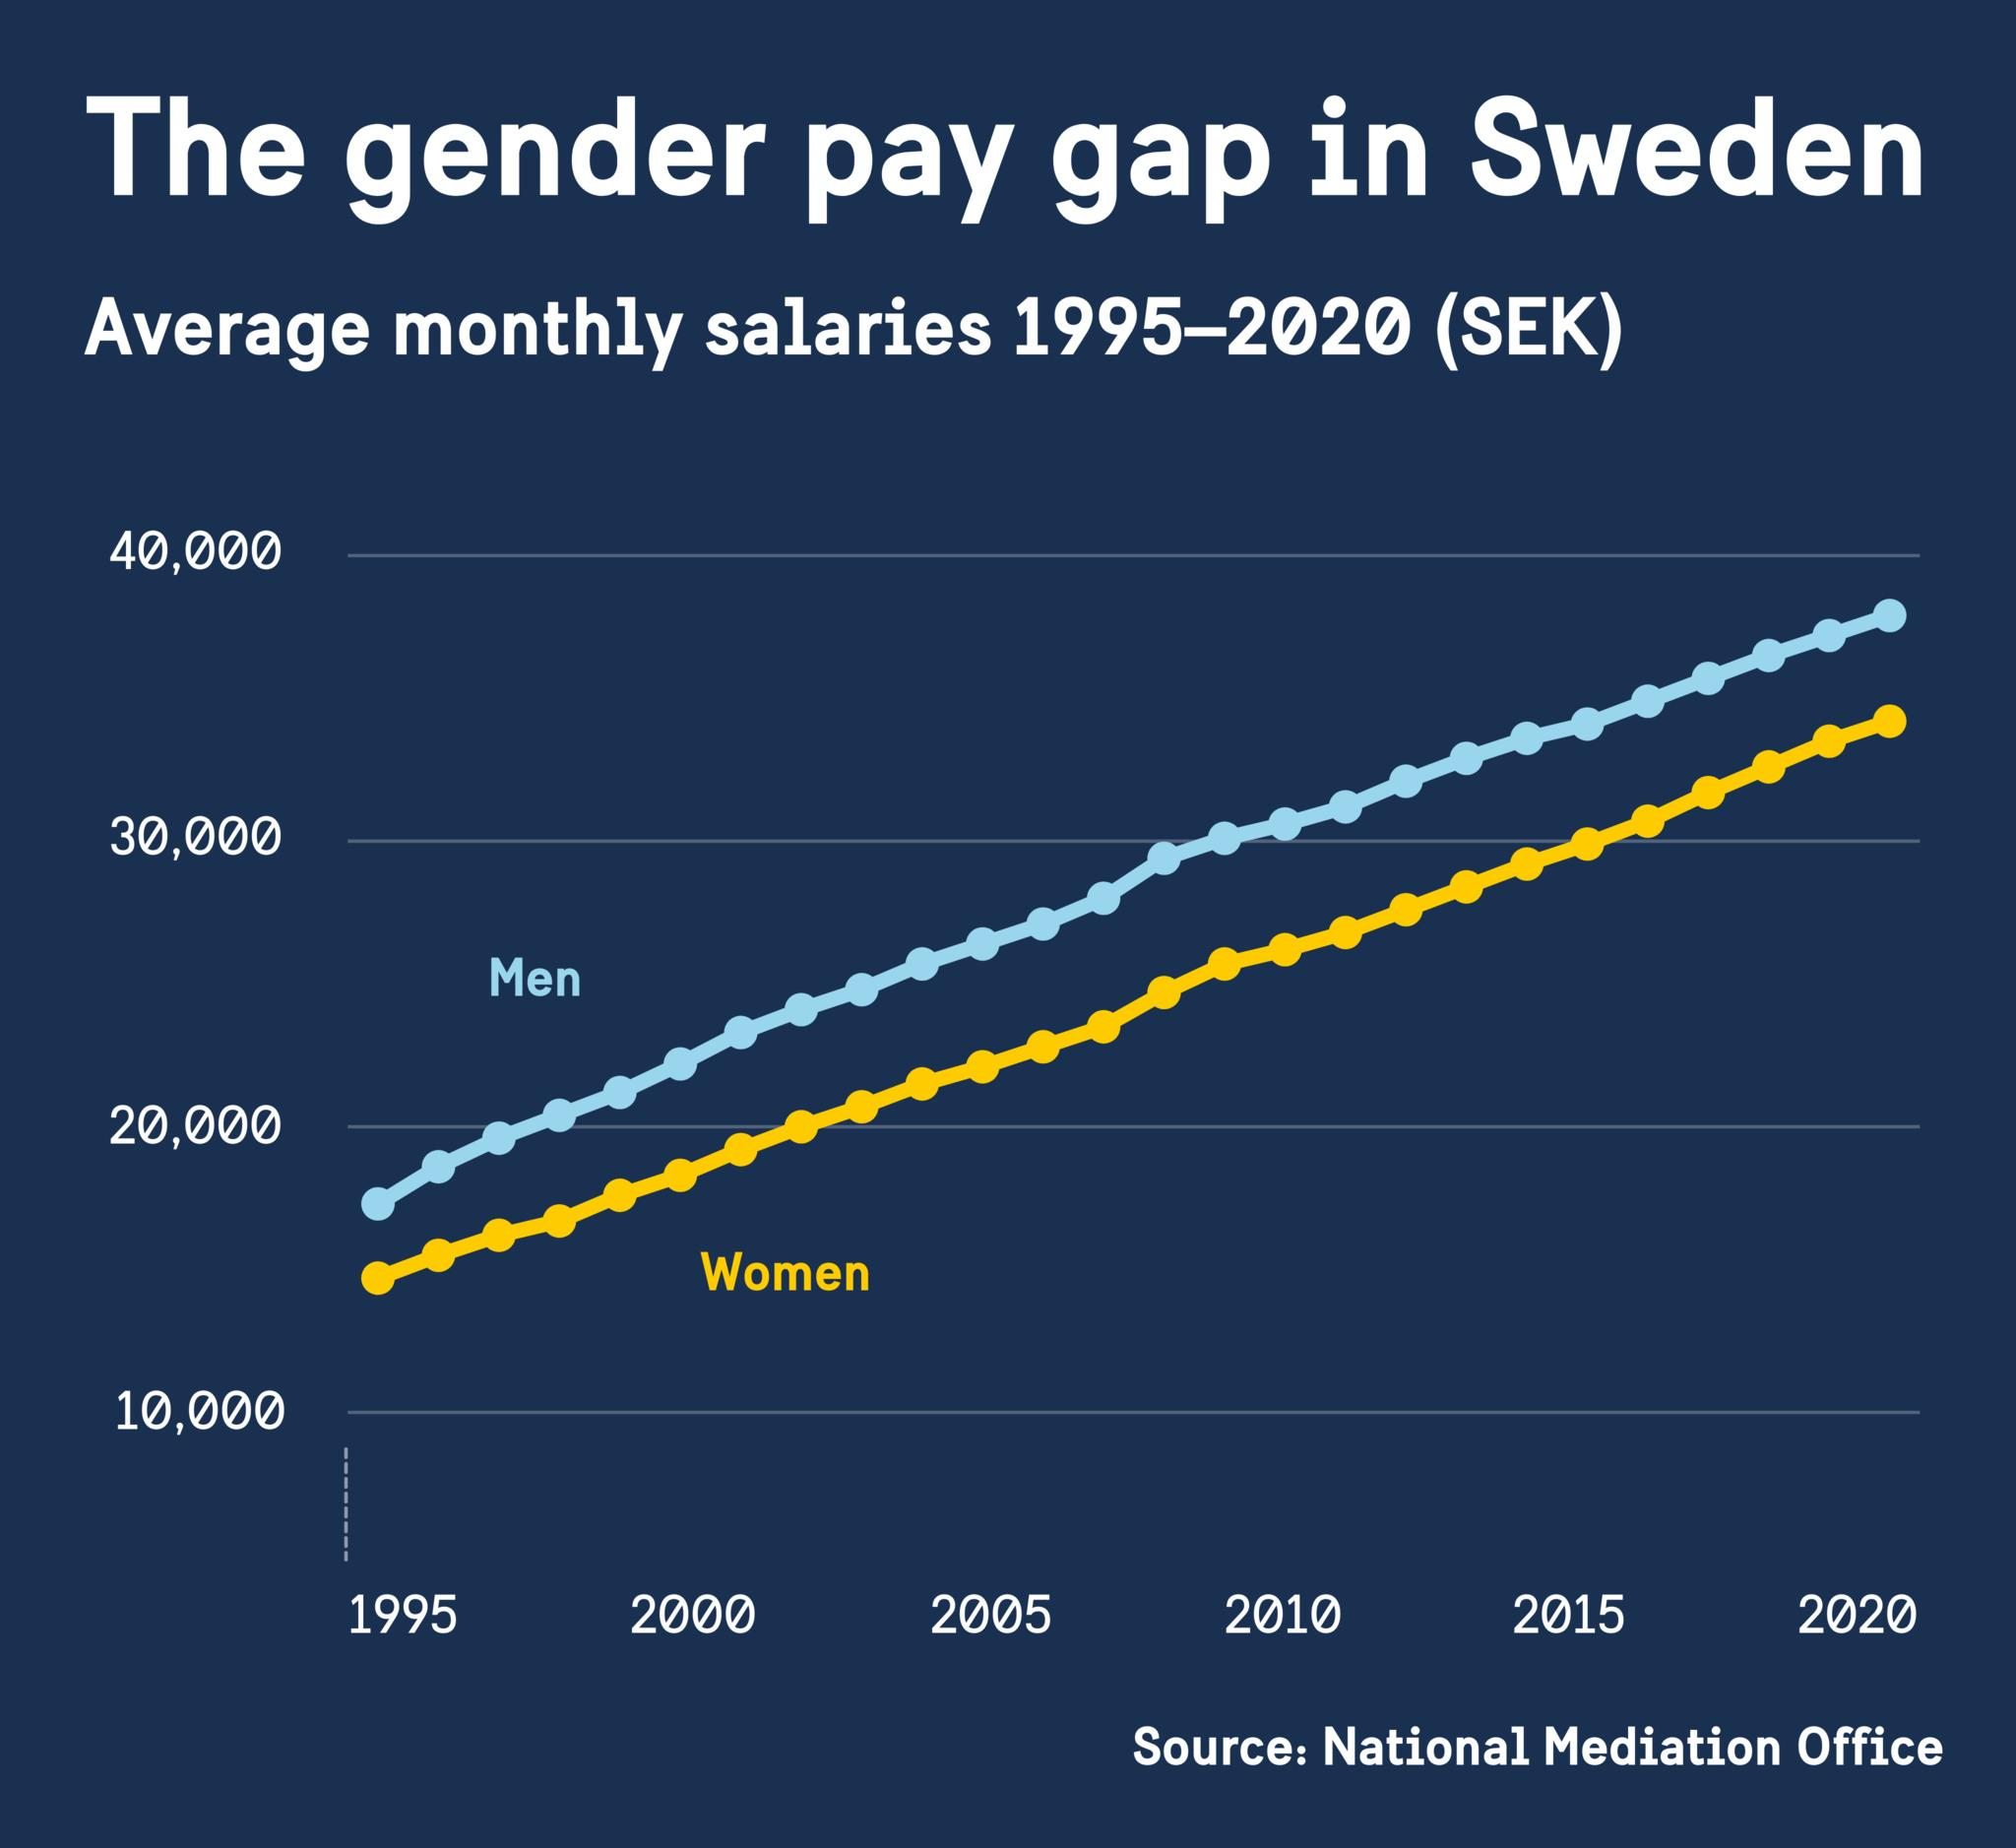 Chart showing the pay gap between men and women in Sweden 1995–2020